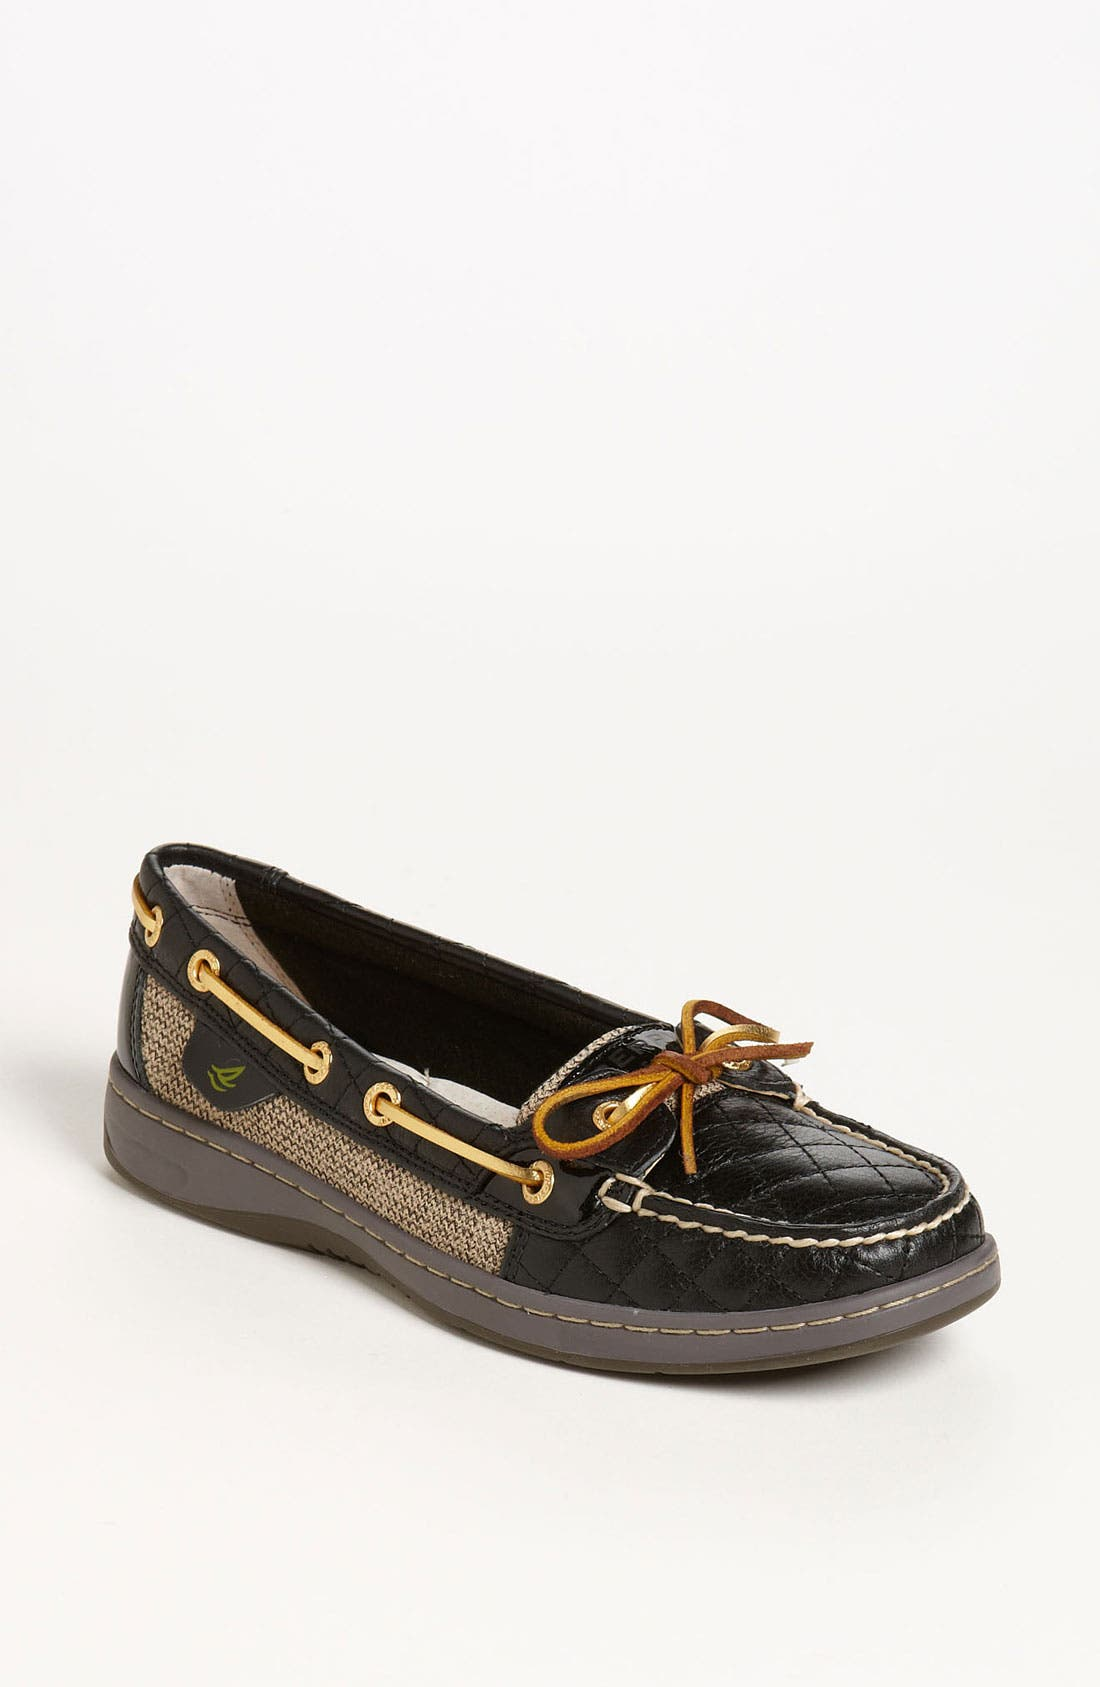 Alternate Image 1 Selected - Sperry Top-Sider® 'Angelfish - Quilted' Boat Shoe